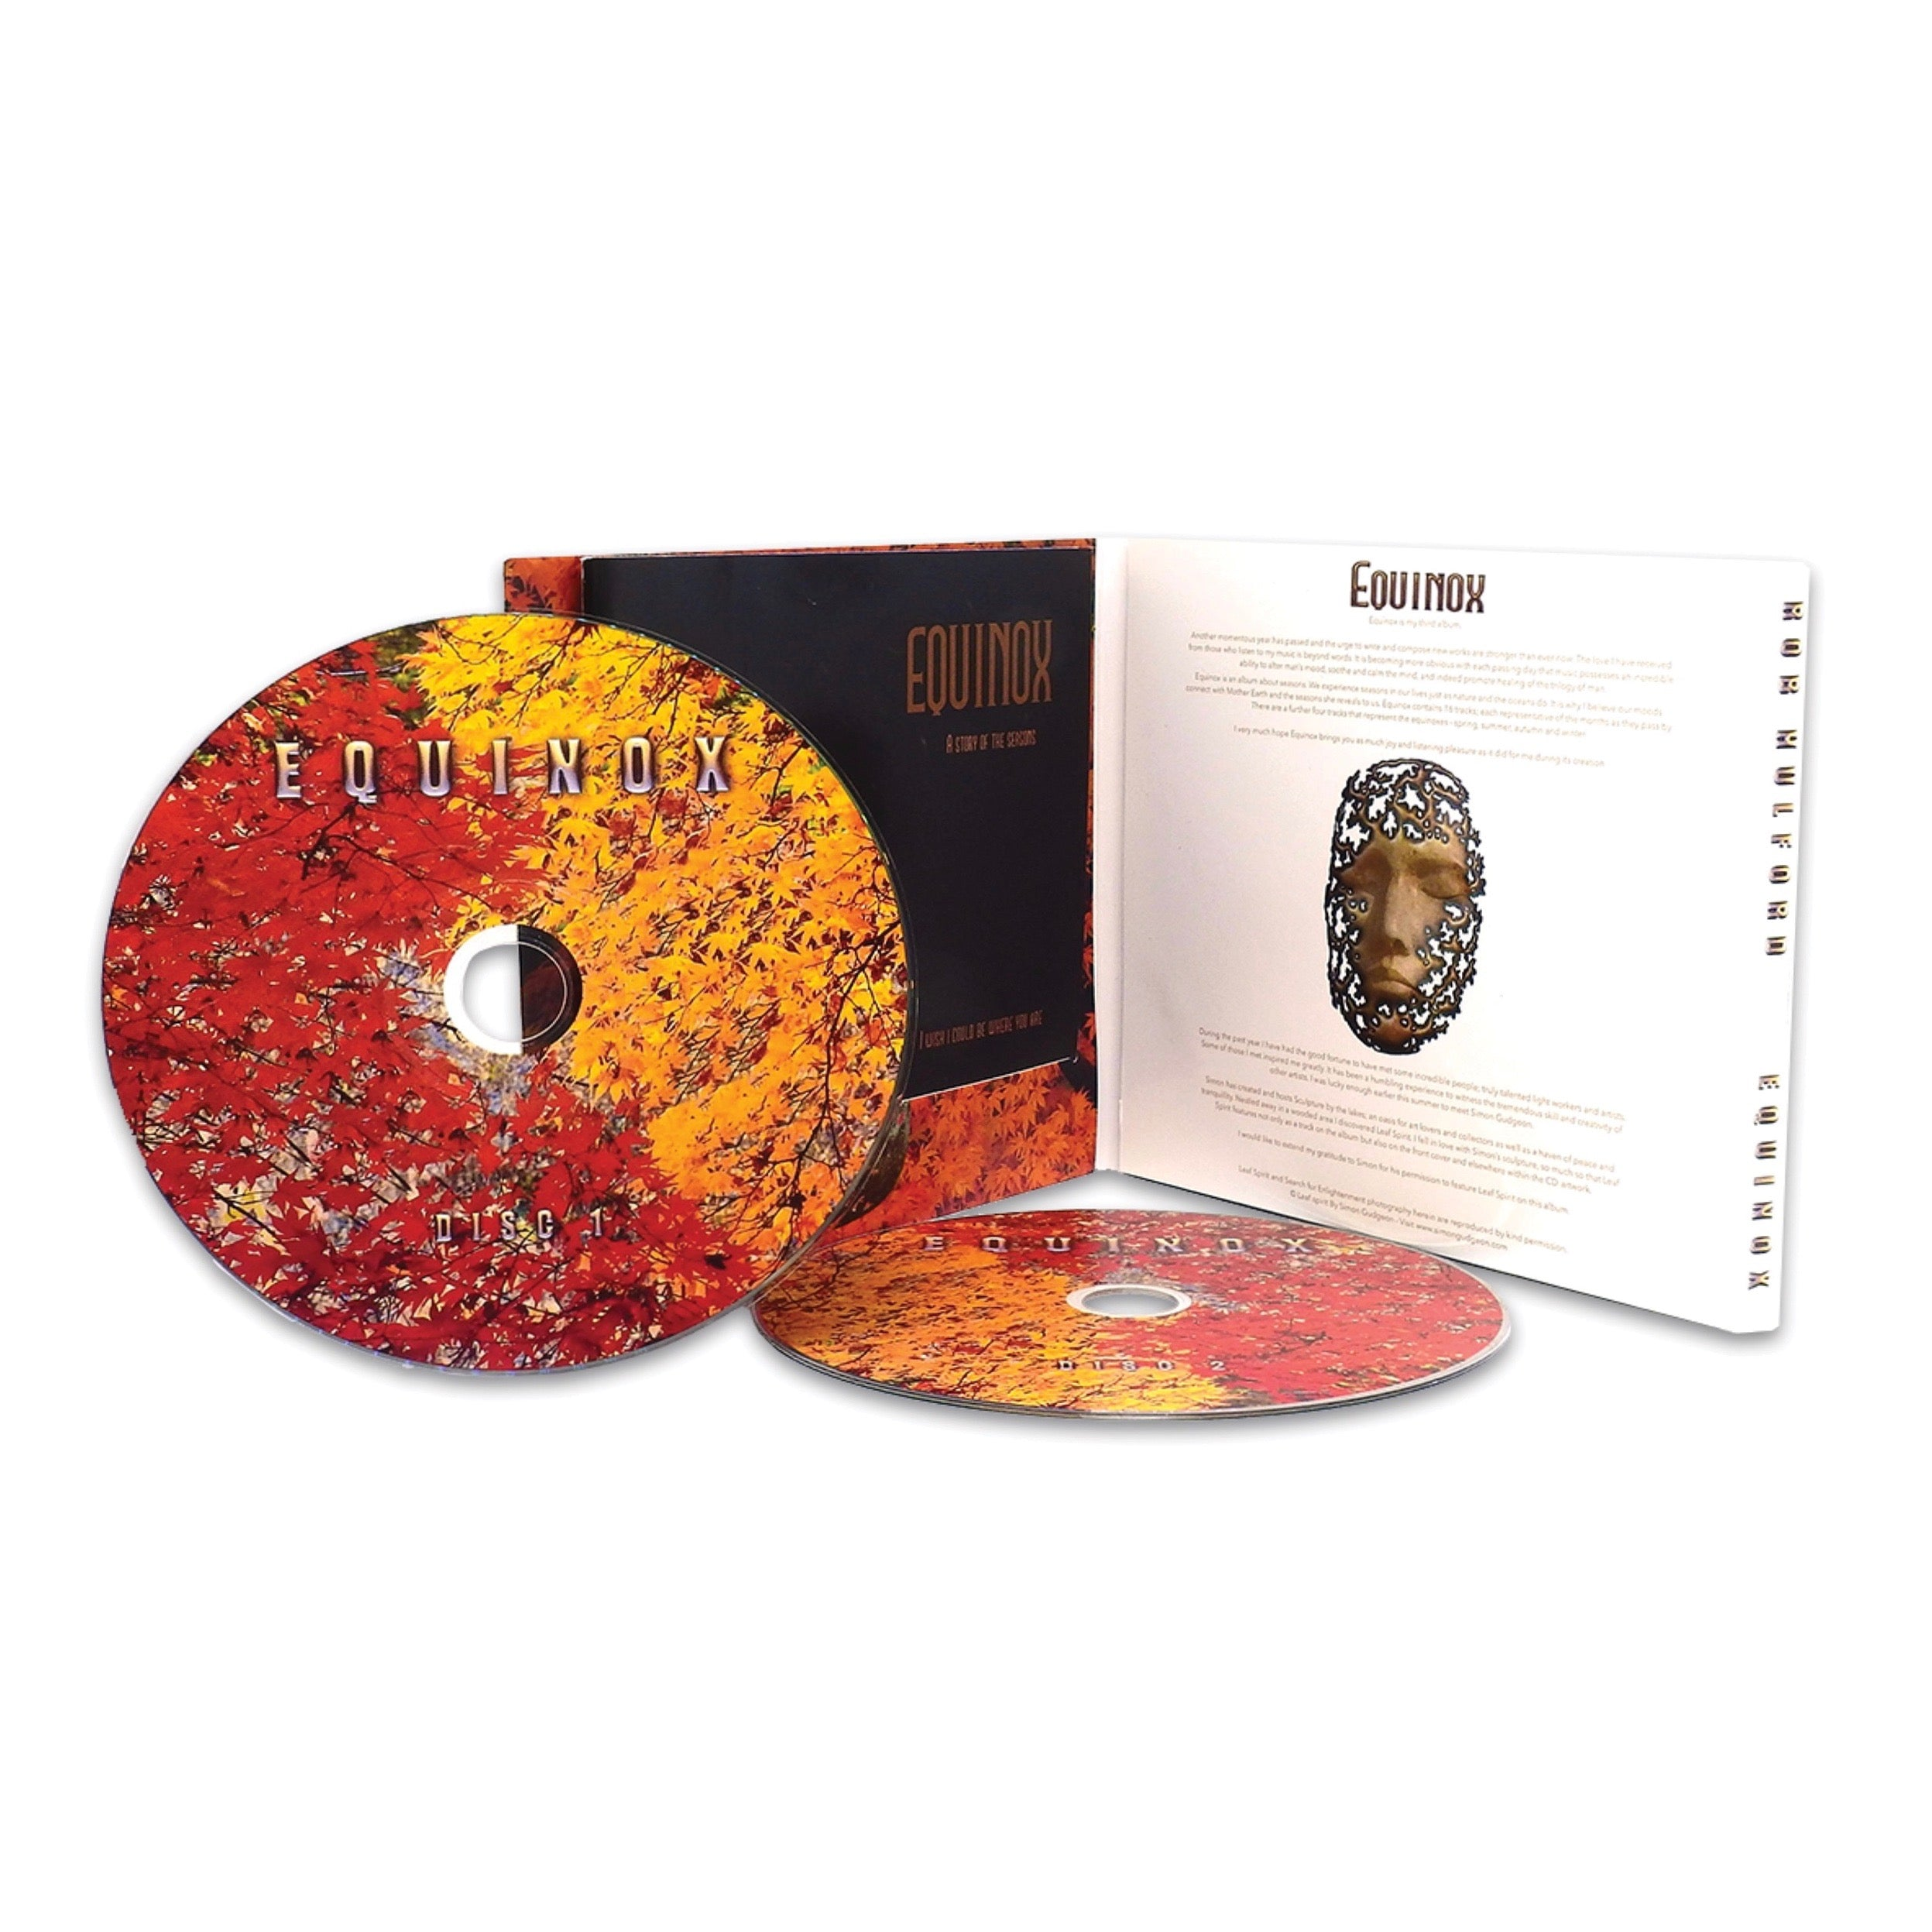 Equinox Double CD